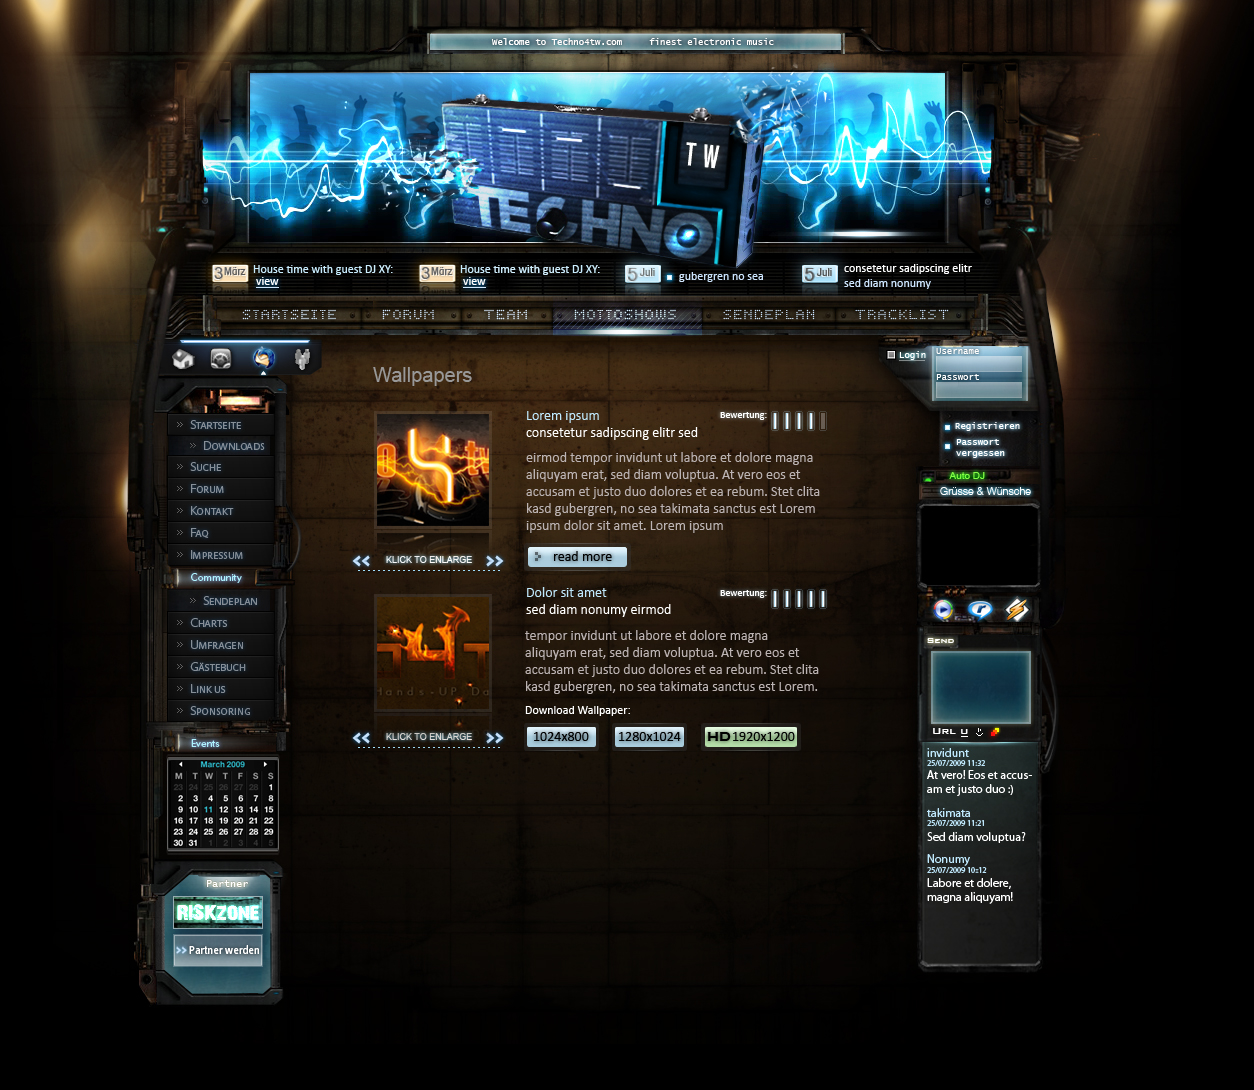 Webradio Template by xphan on DeviantArt oTw6Lrqh